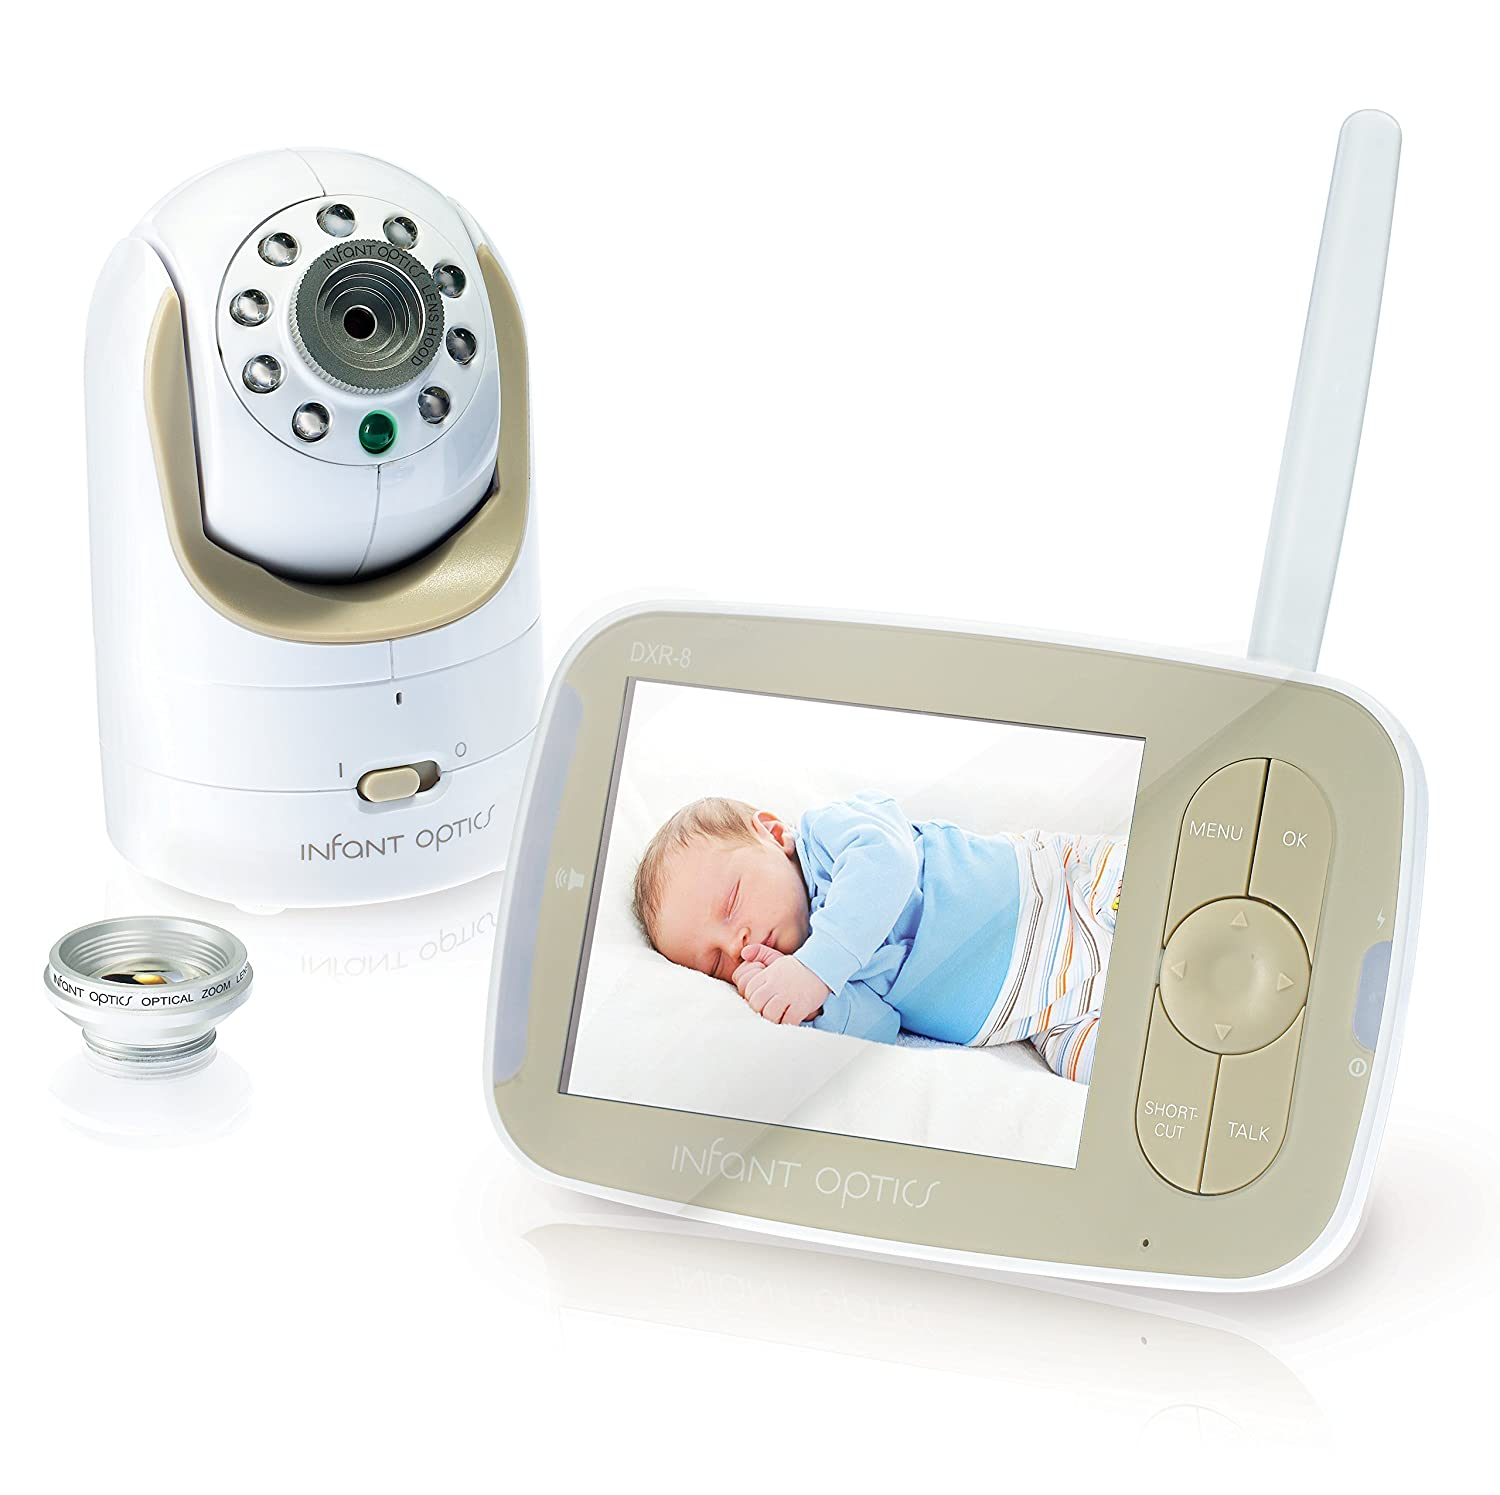 Brighton Butler baby monitor review, infant optics baby monitor